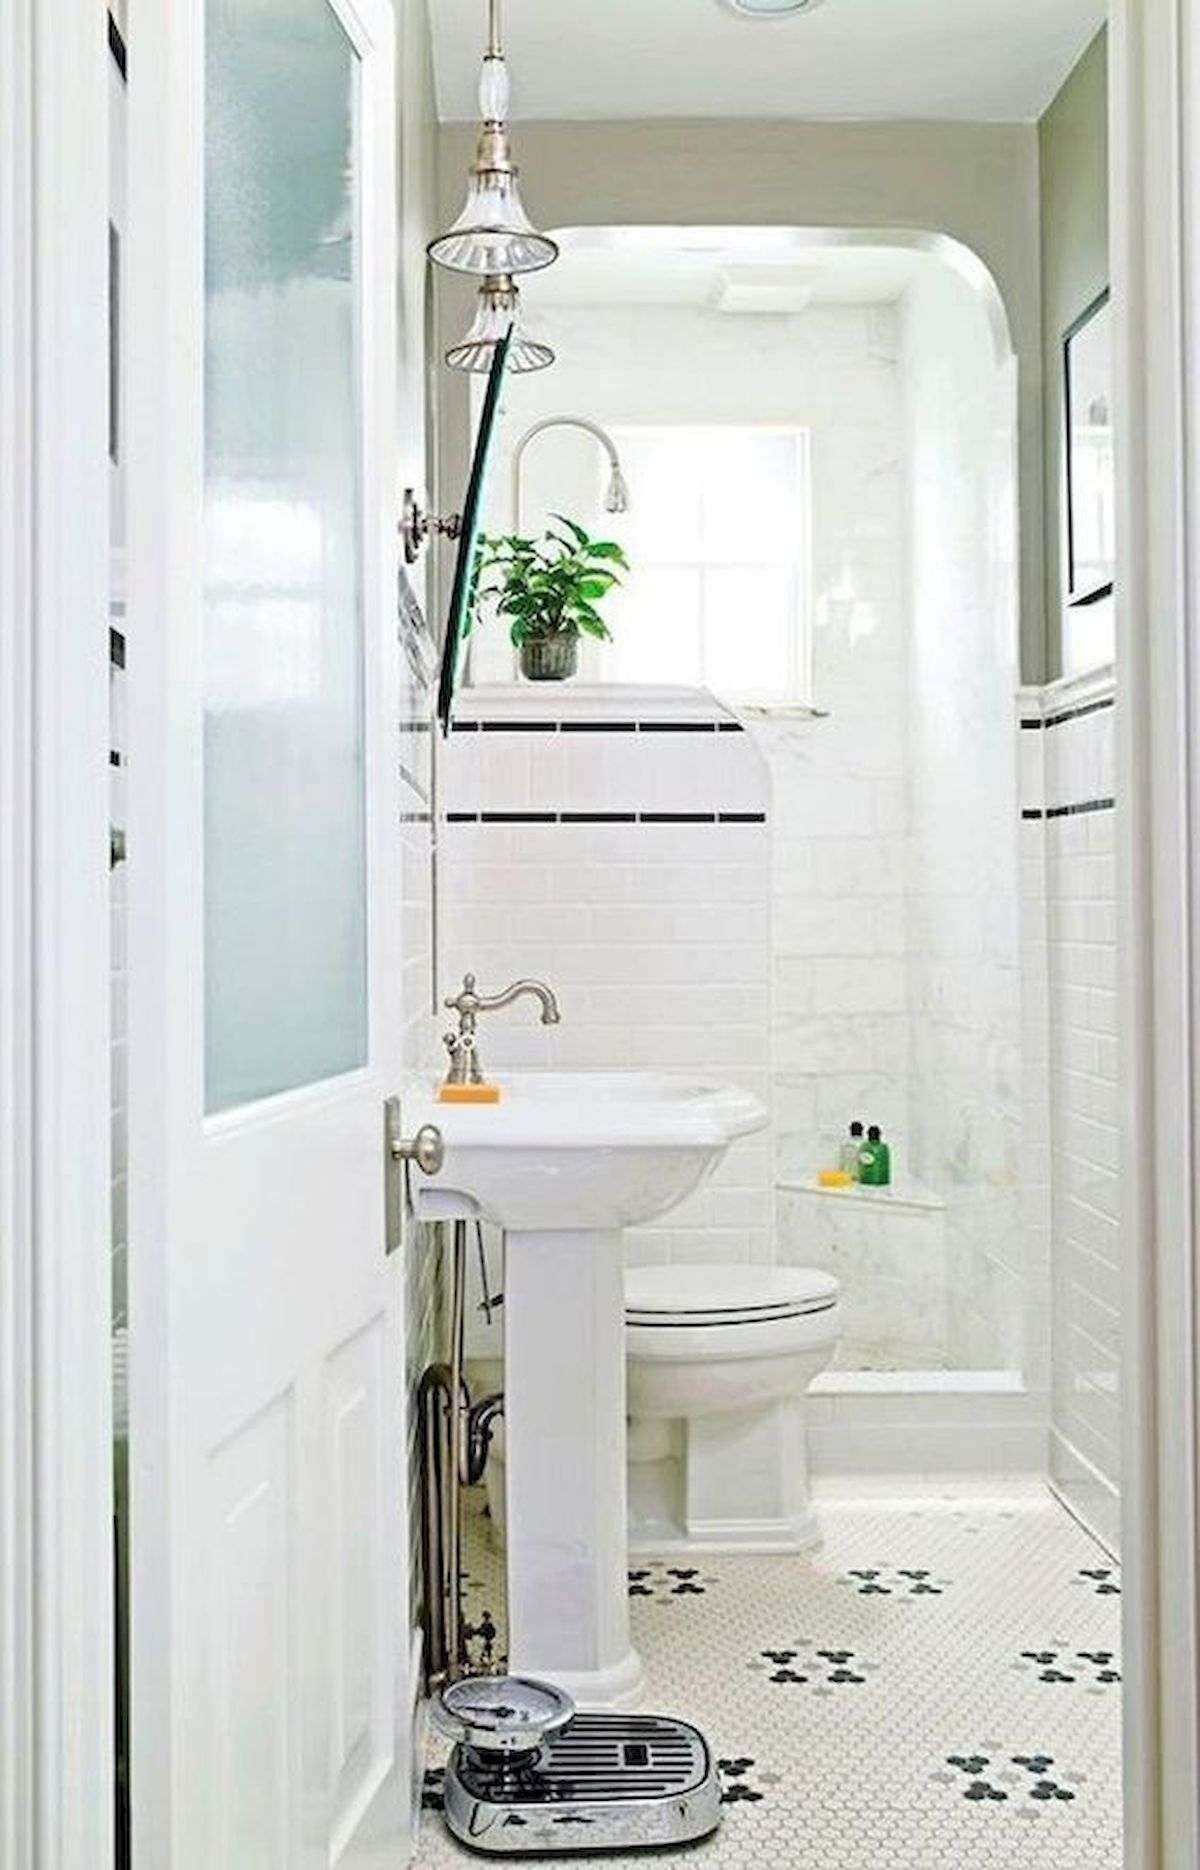 50 Cozy Bathroom Design Ideas for Small Space in Your Home ... on Bathroom Ideas For Small Space  id=70935